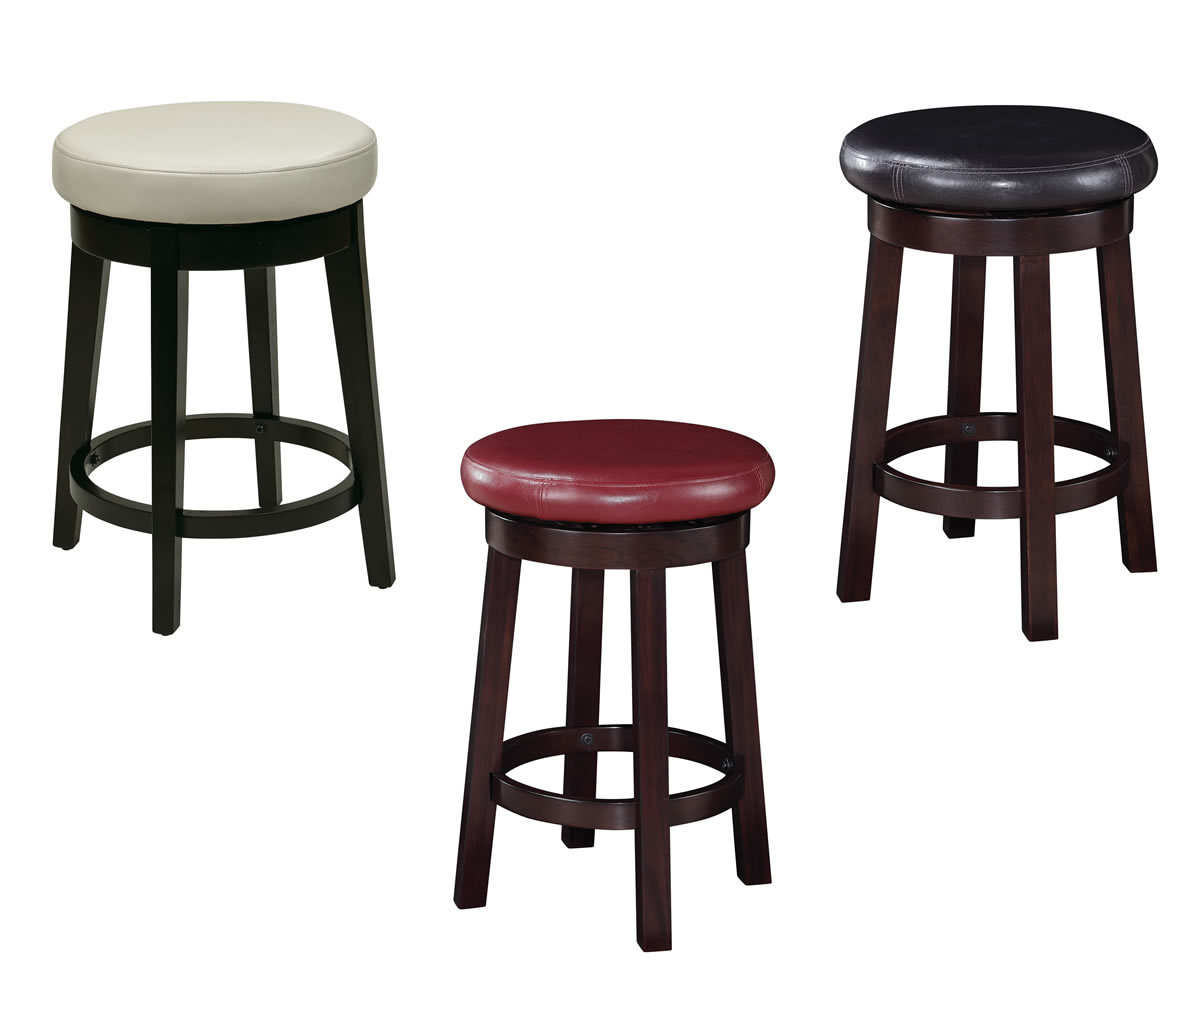 24 Inch High Seat Round Barstool Faux Leather Wood Stool